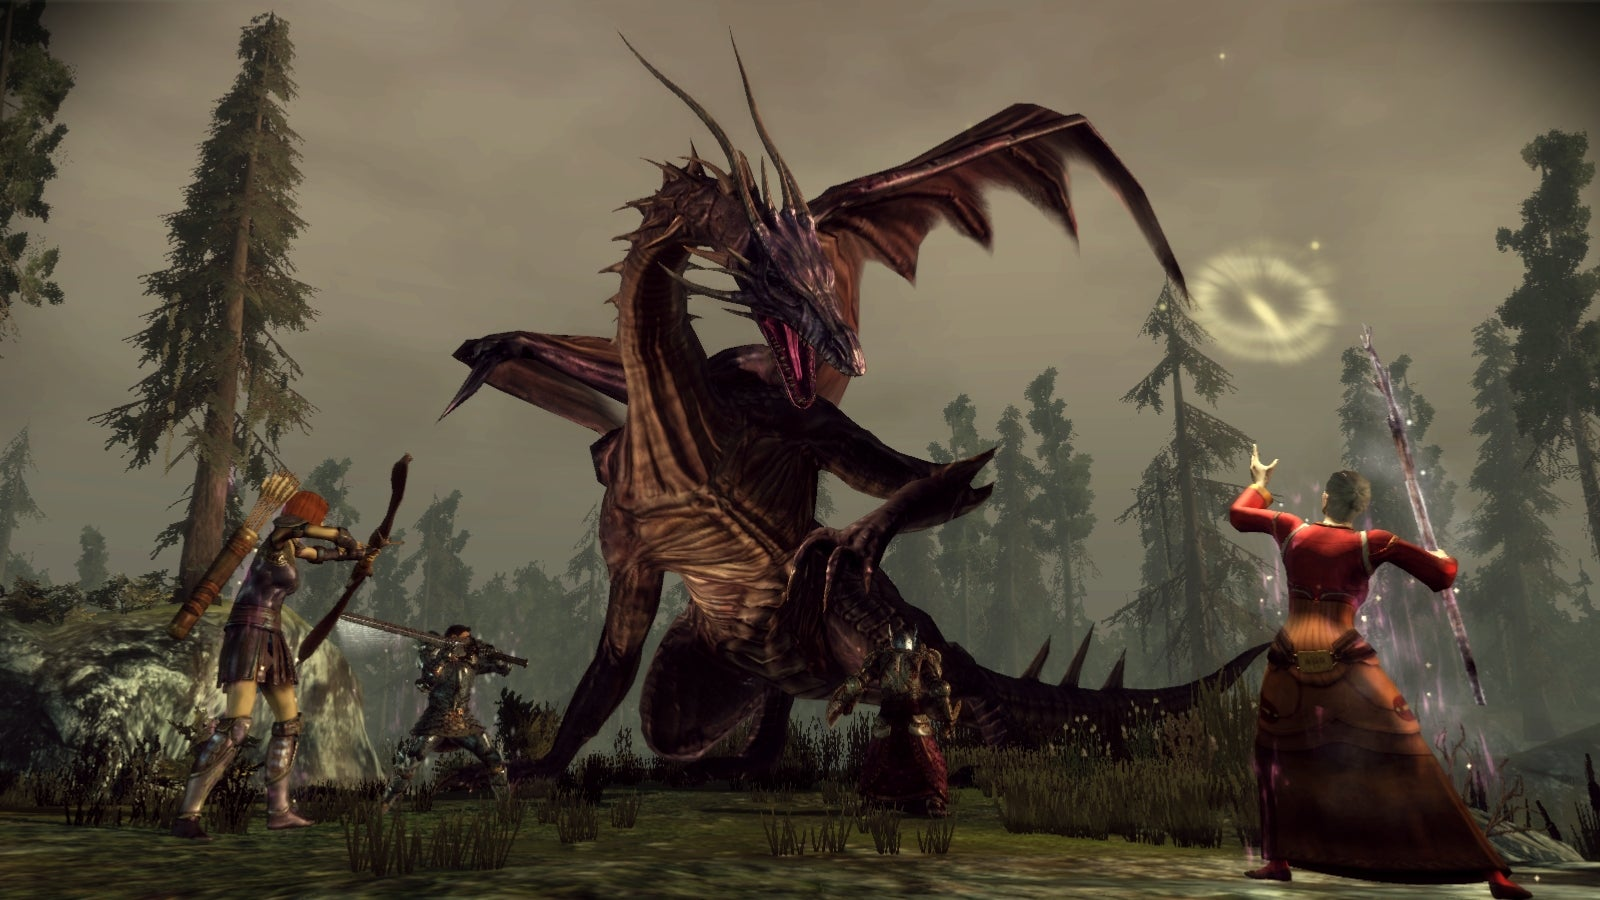 Dragon Age: Origins Mod Restores Lost Content, Fixes Hundreds Of Bugs